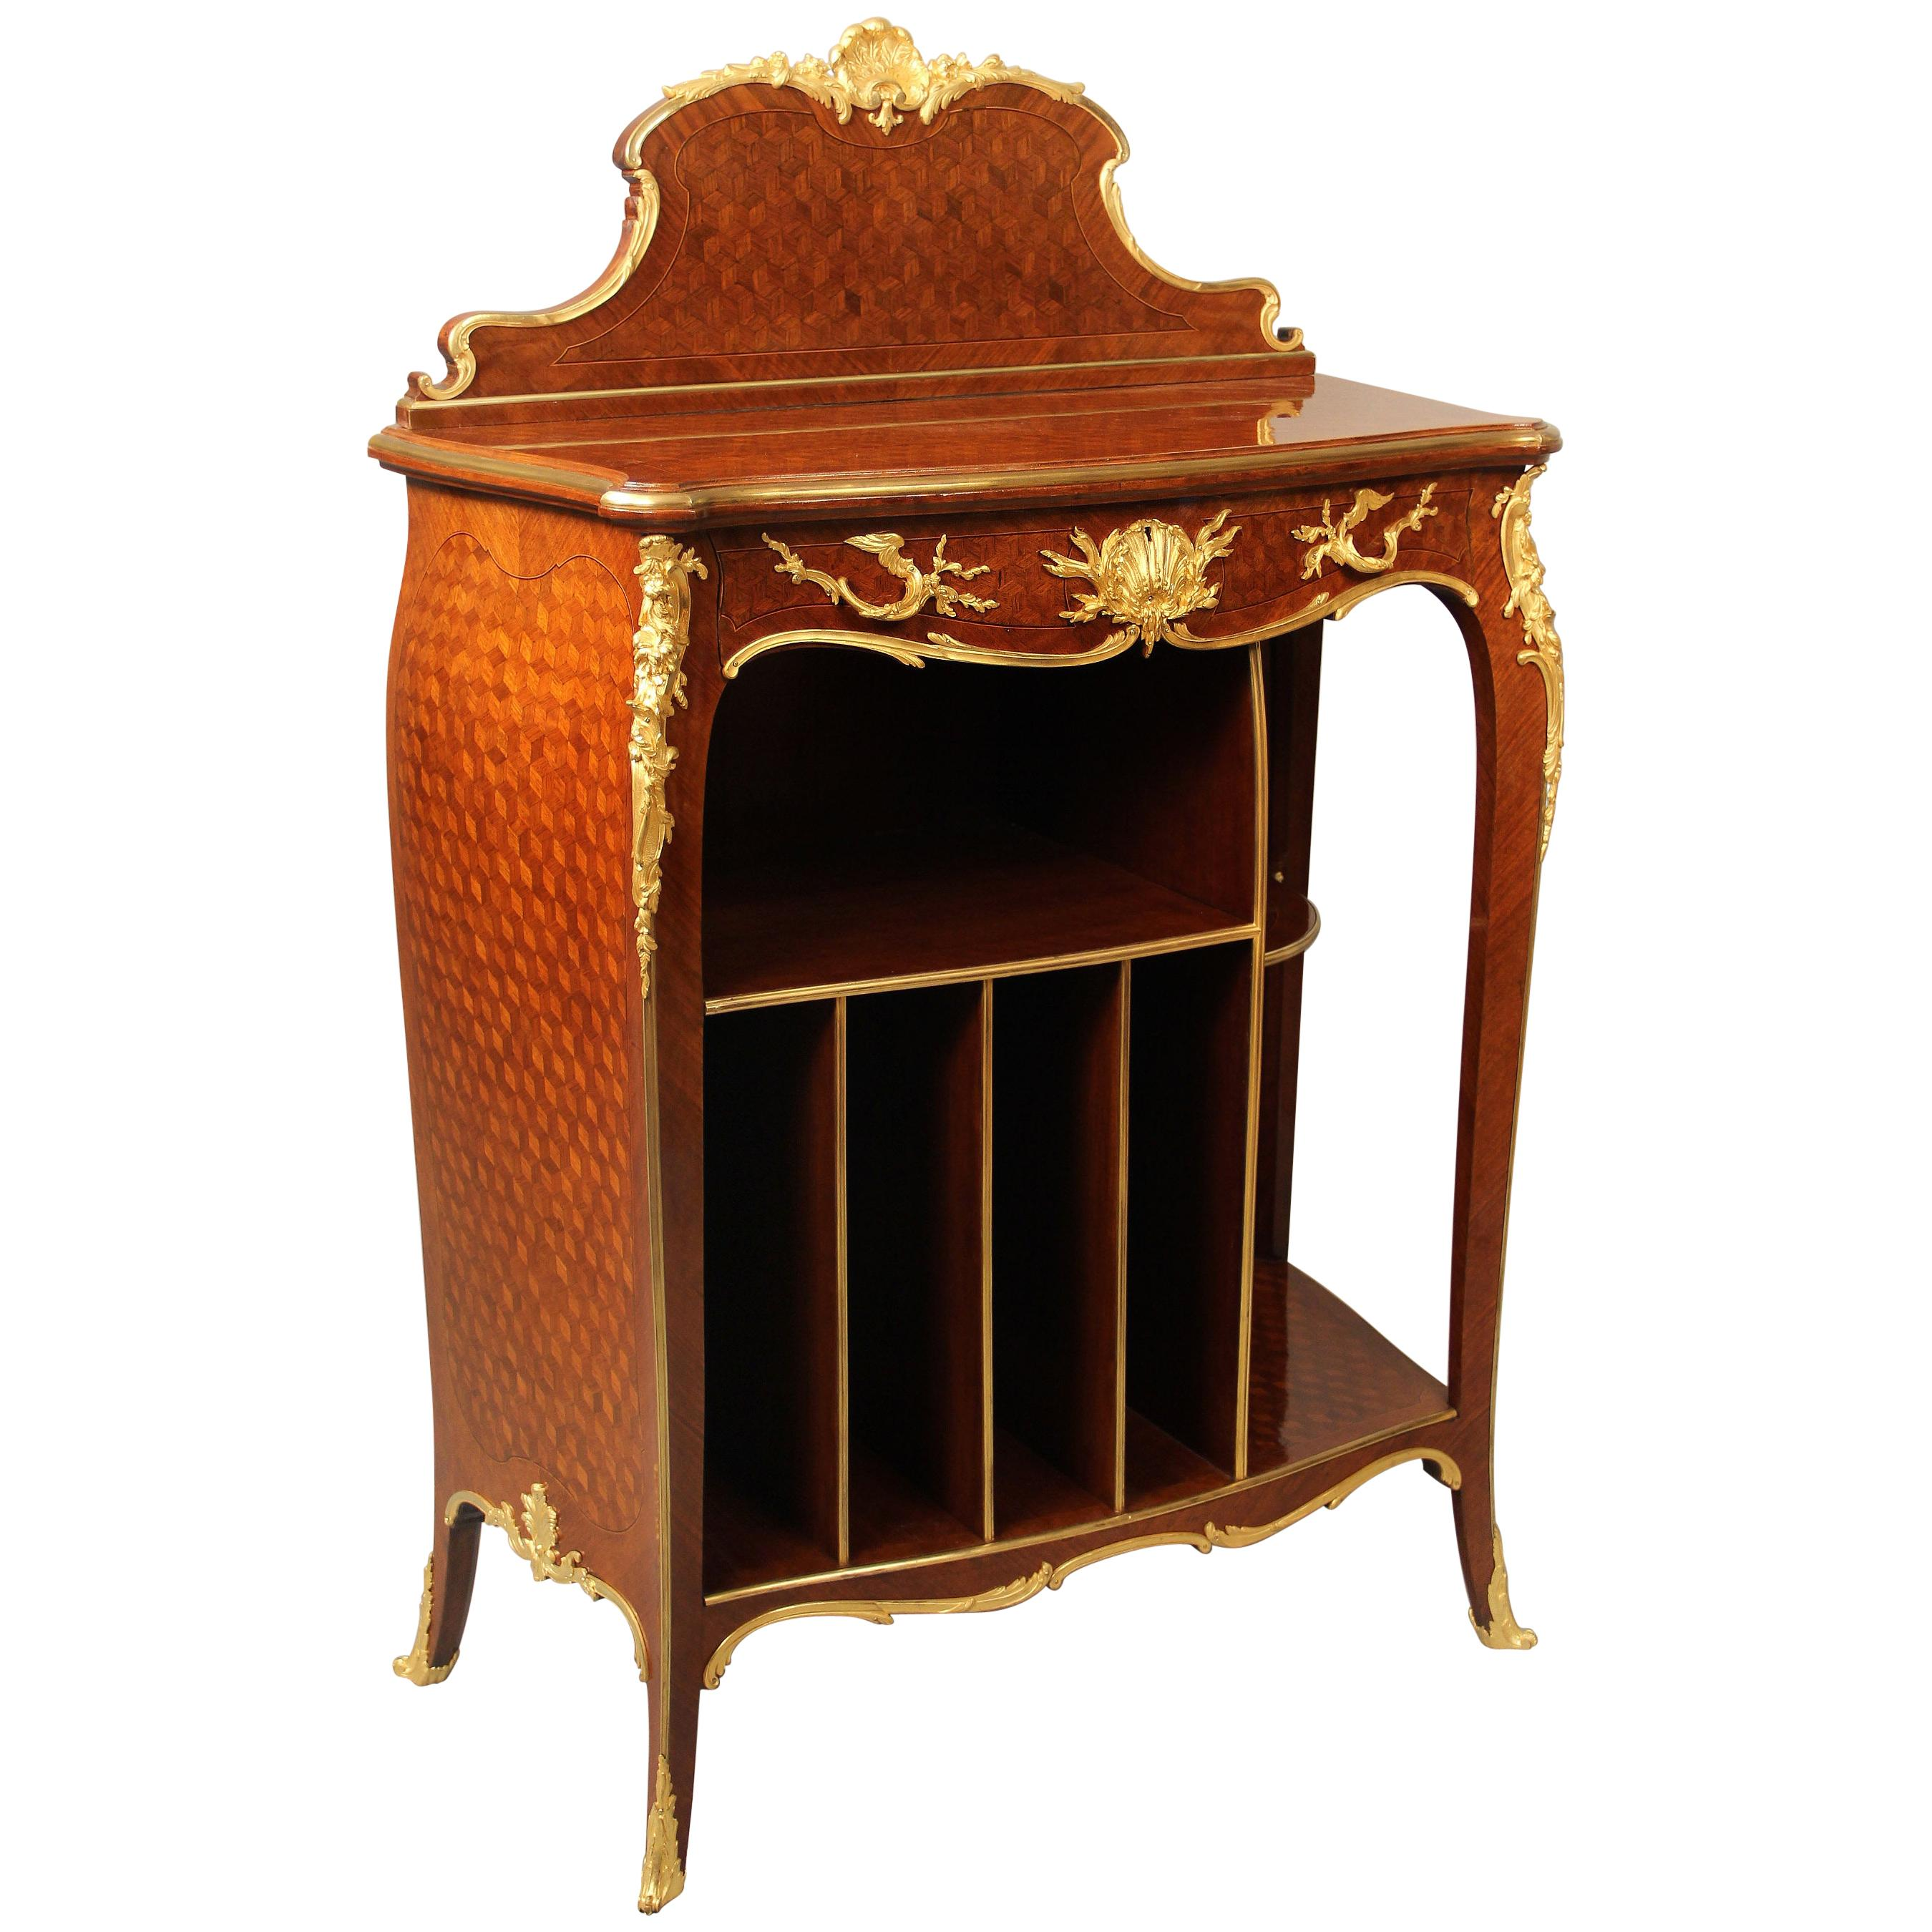 Unique Late 19th Century Gilt Bronze Mounted Cabinet by François Linke